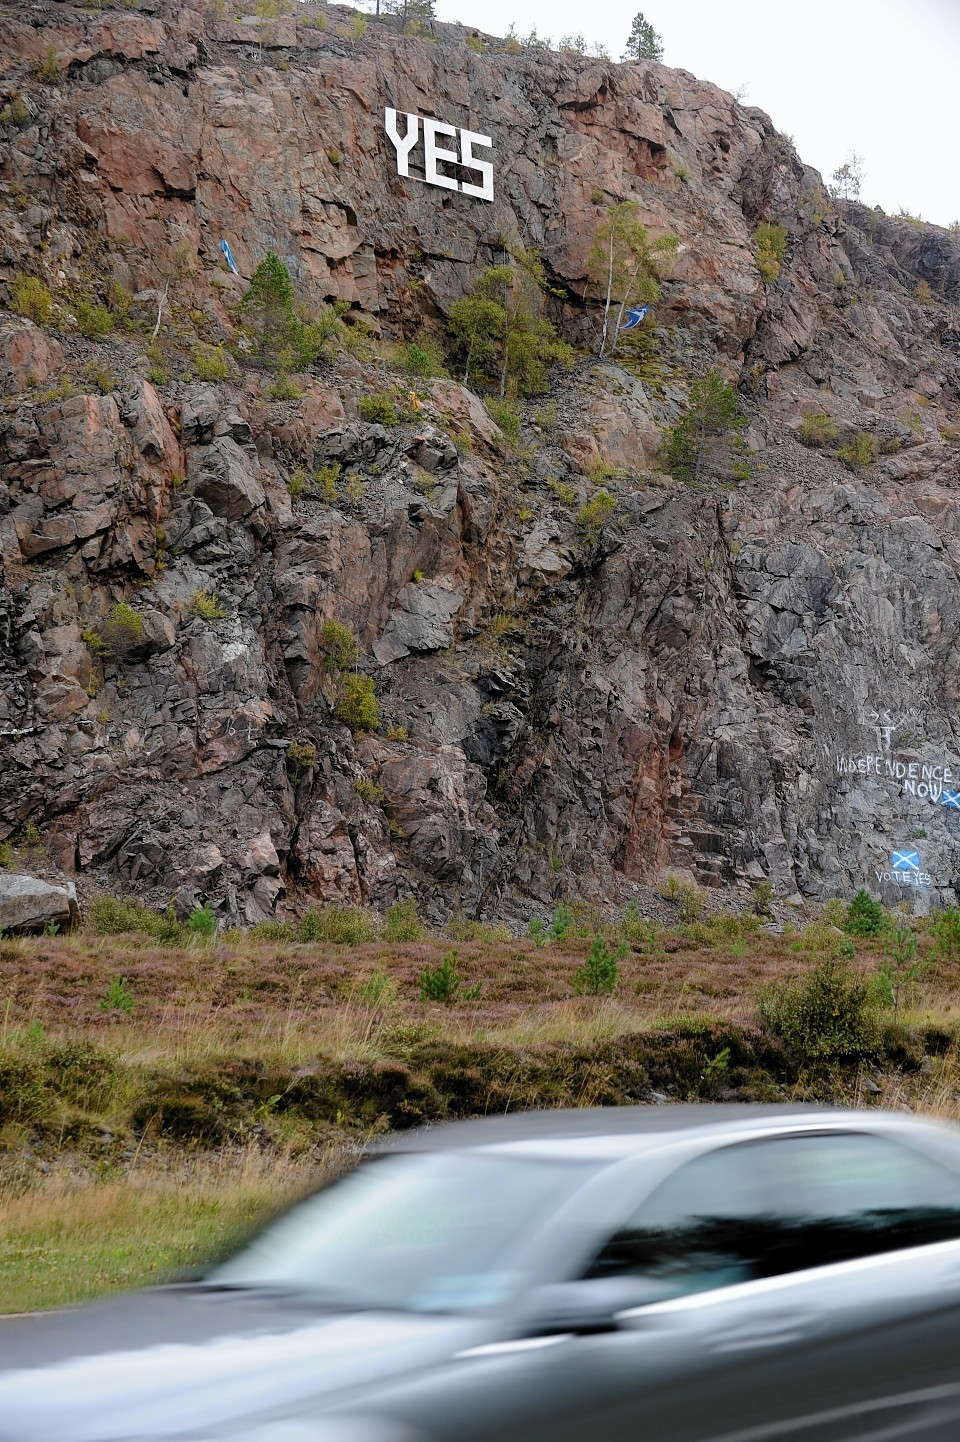 The Yes sign at the Slochd on the A9